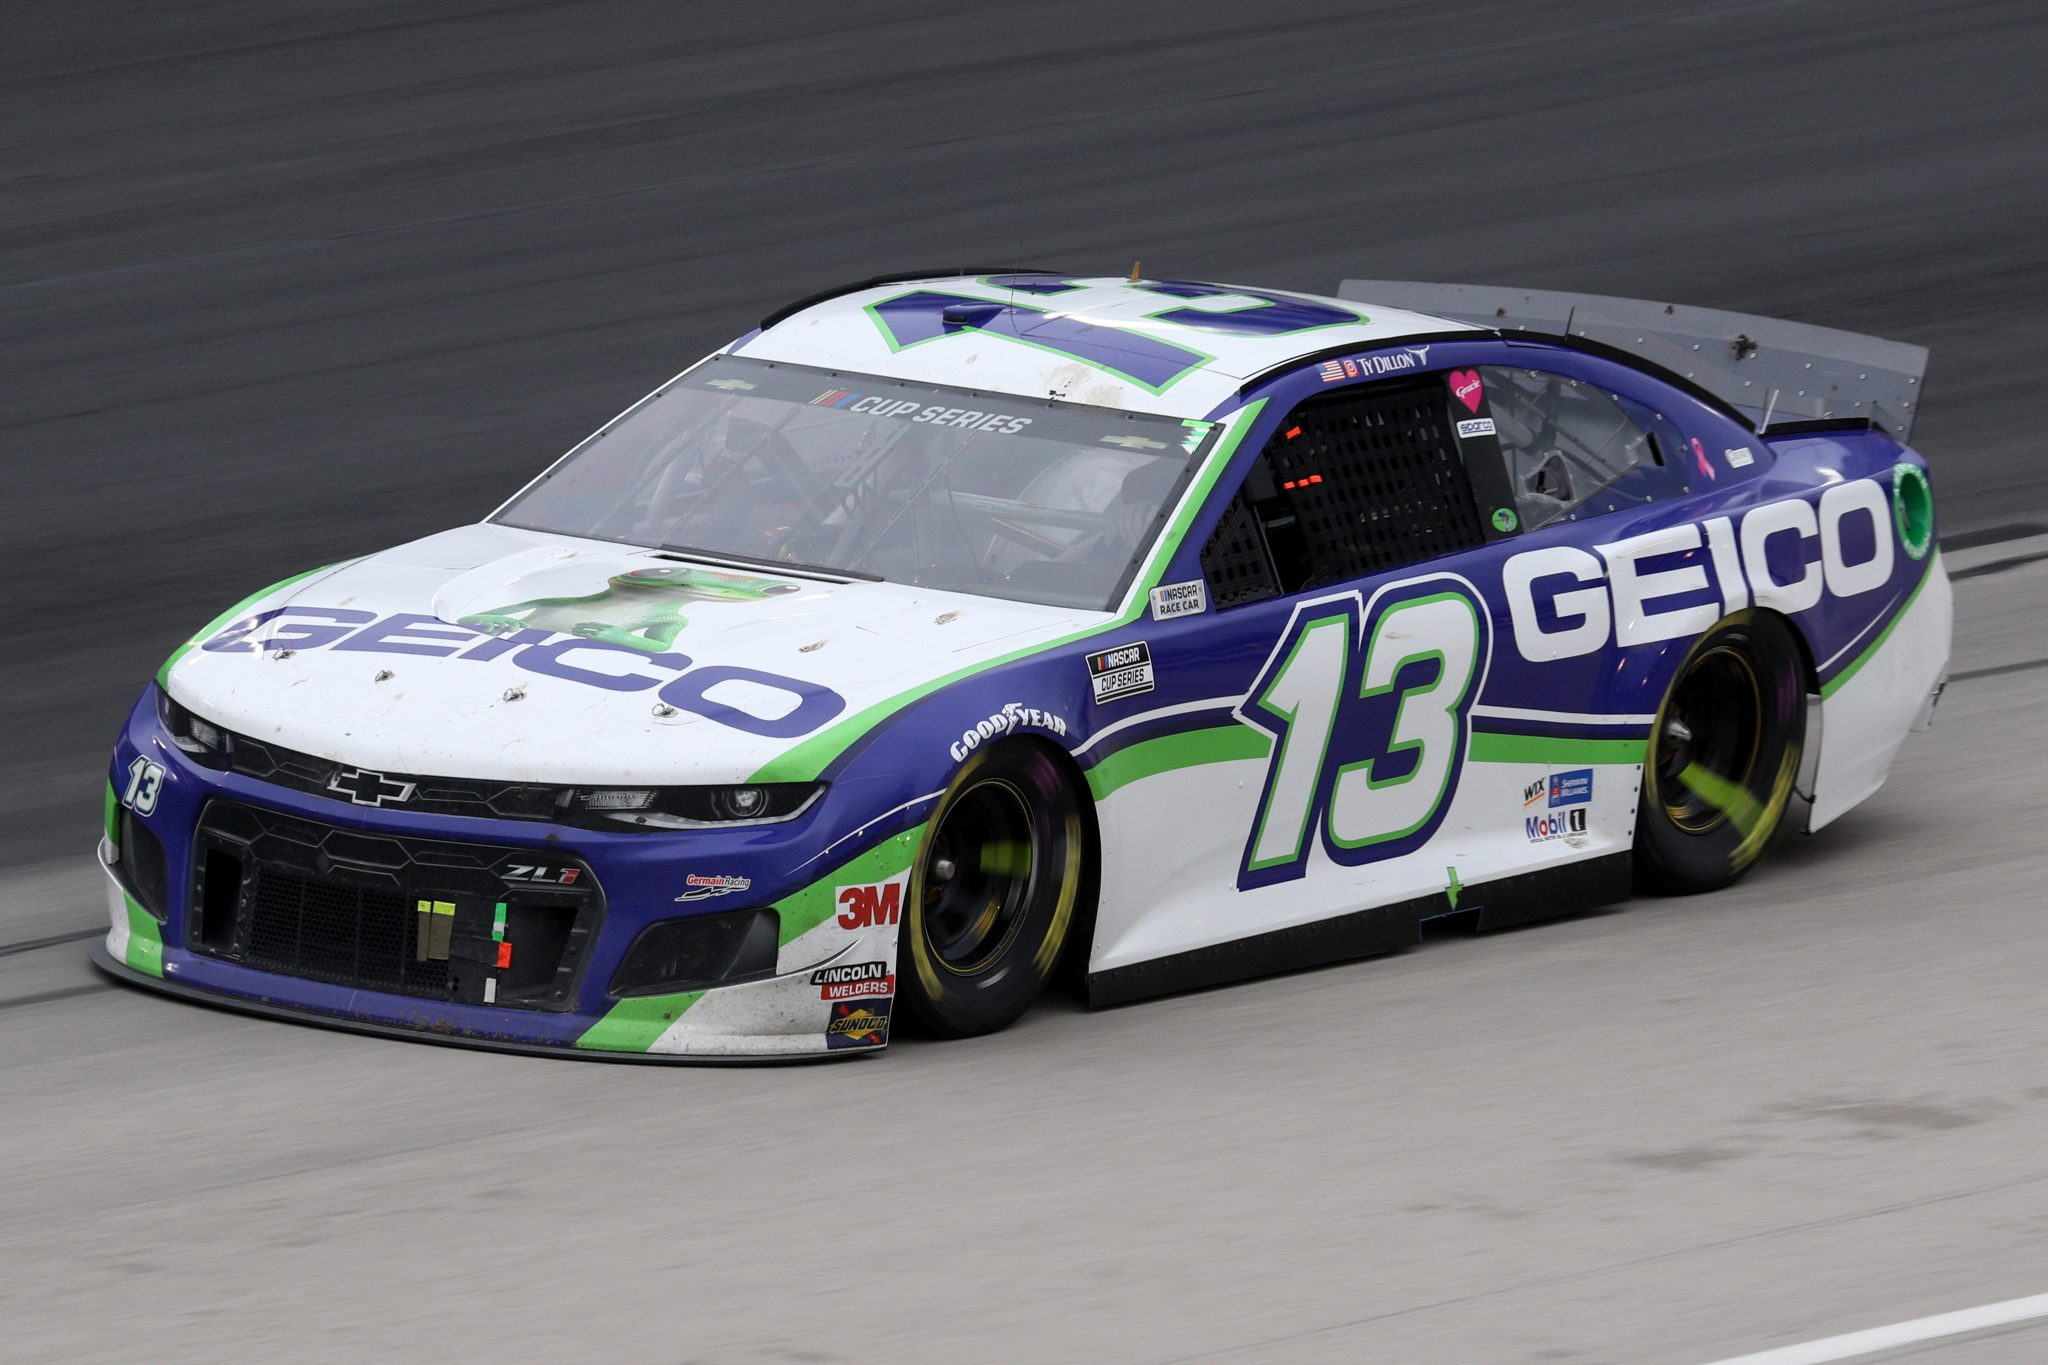 FORT WORTH, TEXAS - OCTOBER 28: Ty Dillon, driver of the #13 GEICO Chevrolet, drives during the NASCAR Cup Series Autotrader EchoPark Automotive 500 at Texas Motor Speedway on October 28, 2020 in Fort Worth, Texas. (Photo by Chris Graythen/Getty Images)   Getty Images